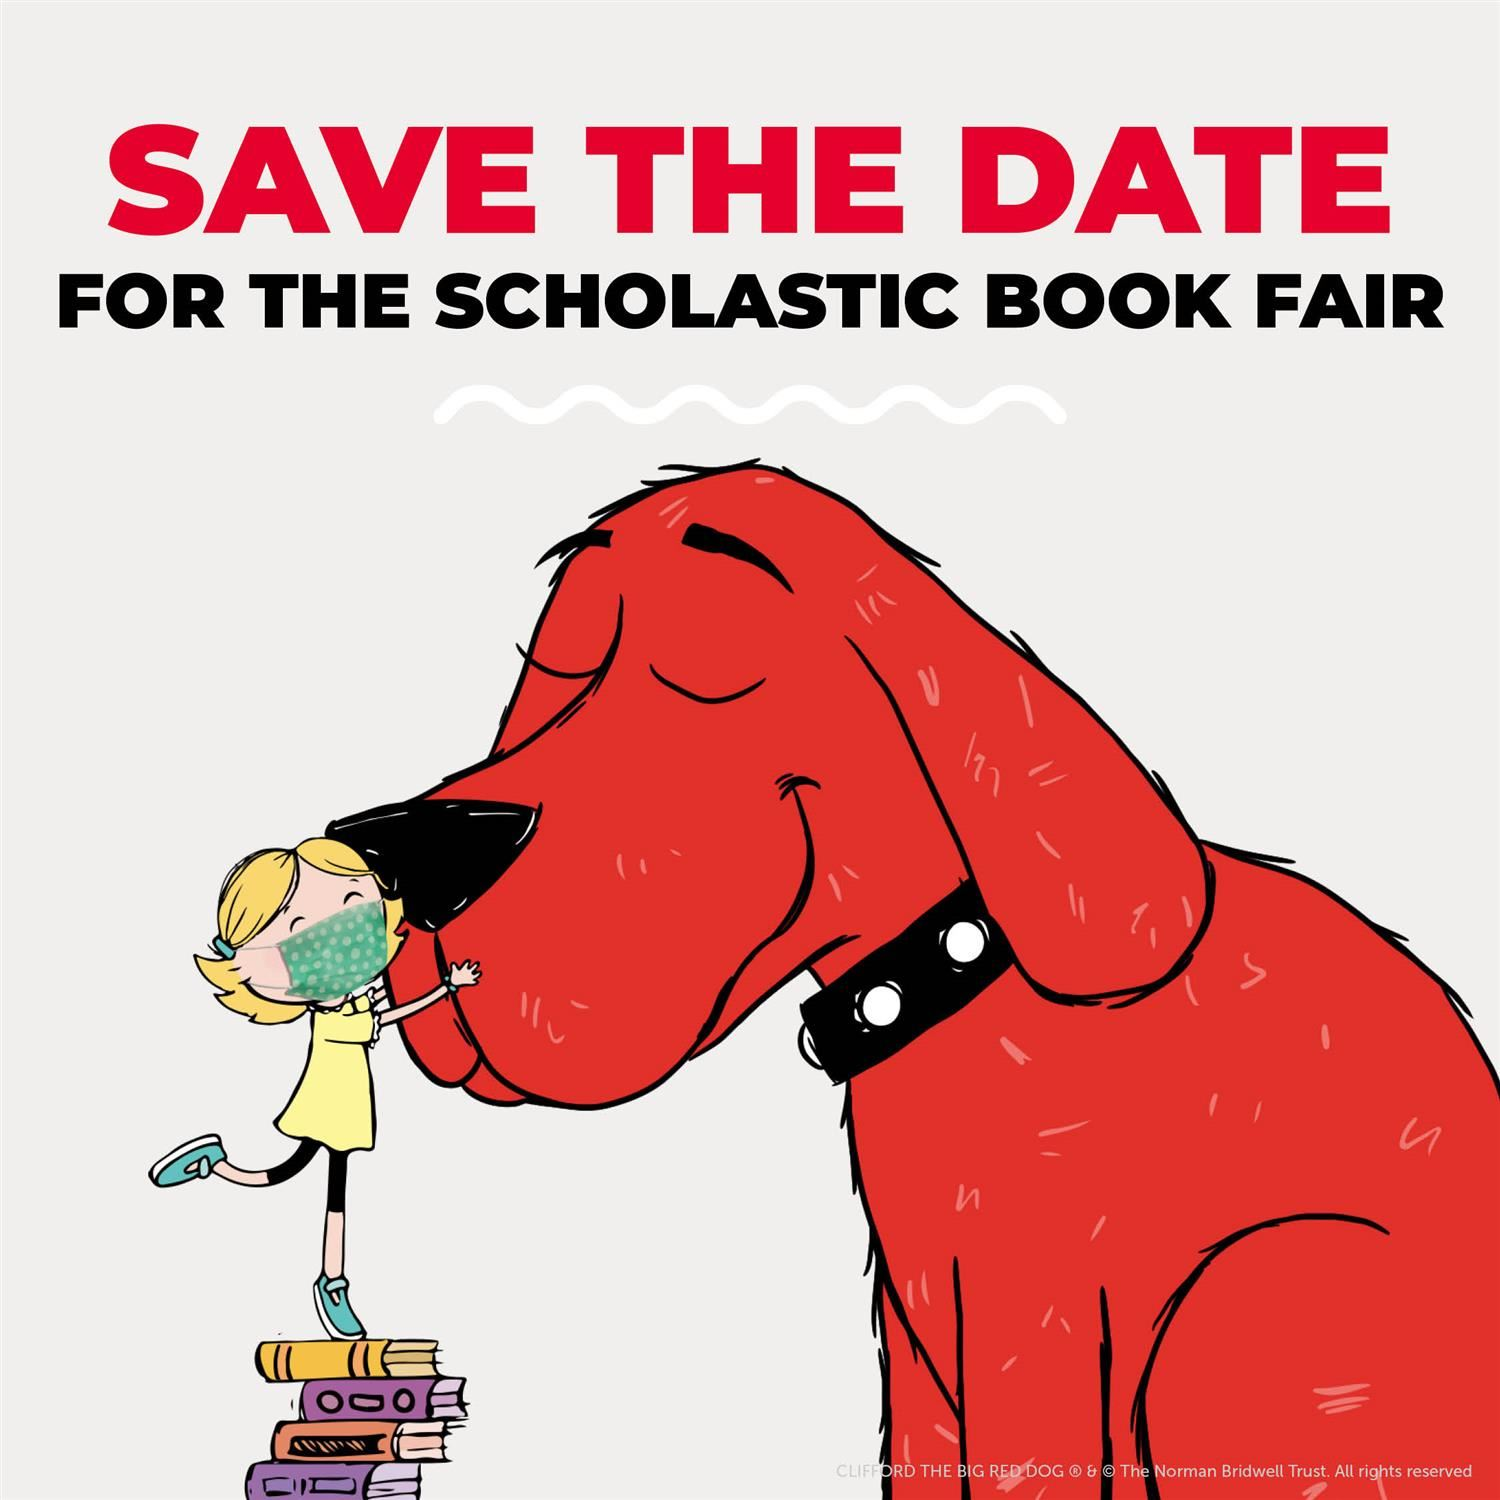 Clifford storybook character and girl